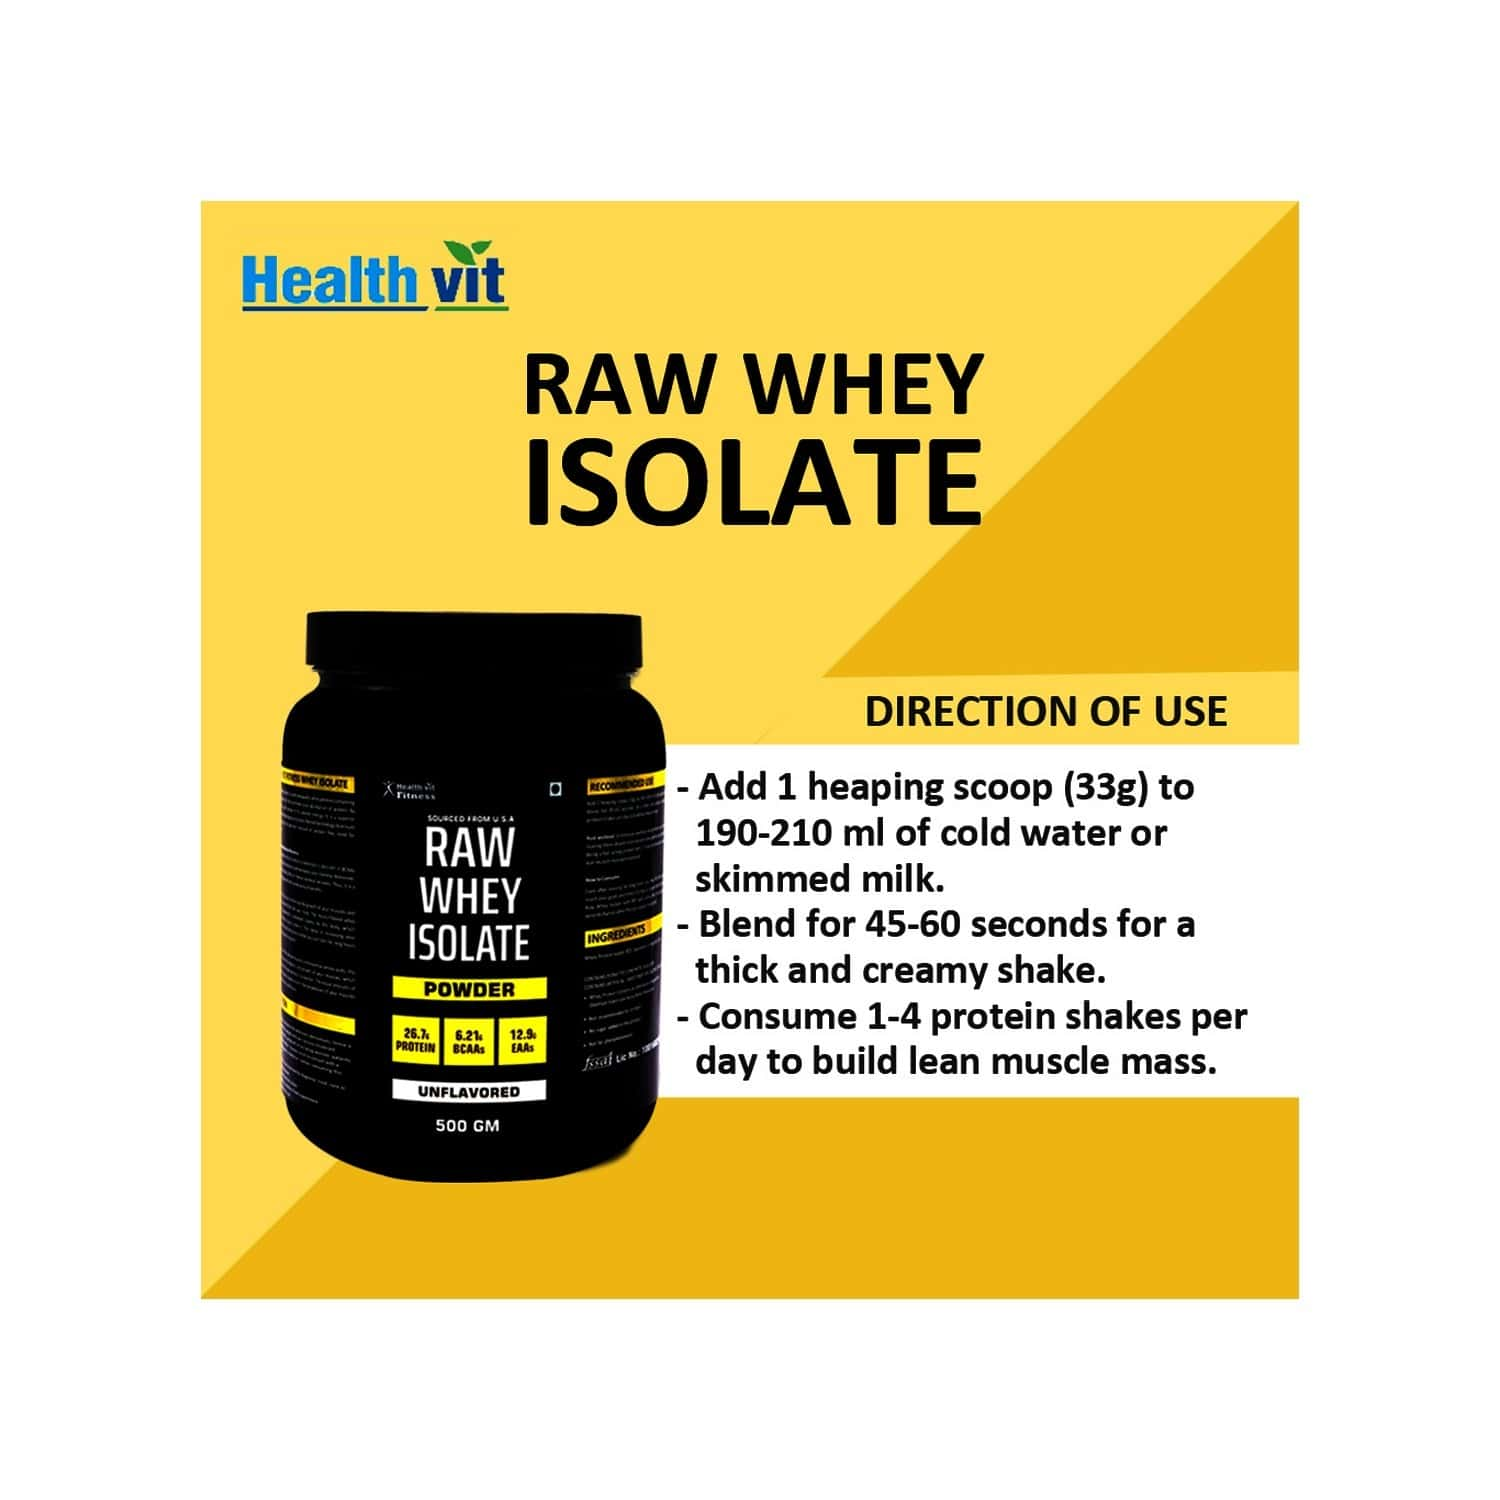 Healthvit Raw Whey Isolate Protein Supplement Powder- Unflavored (33 Serving) -500g